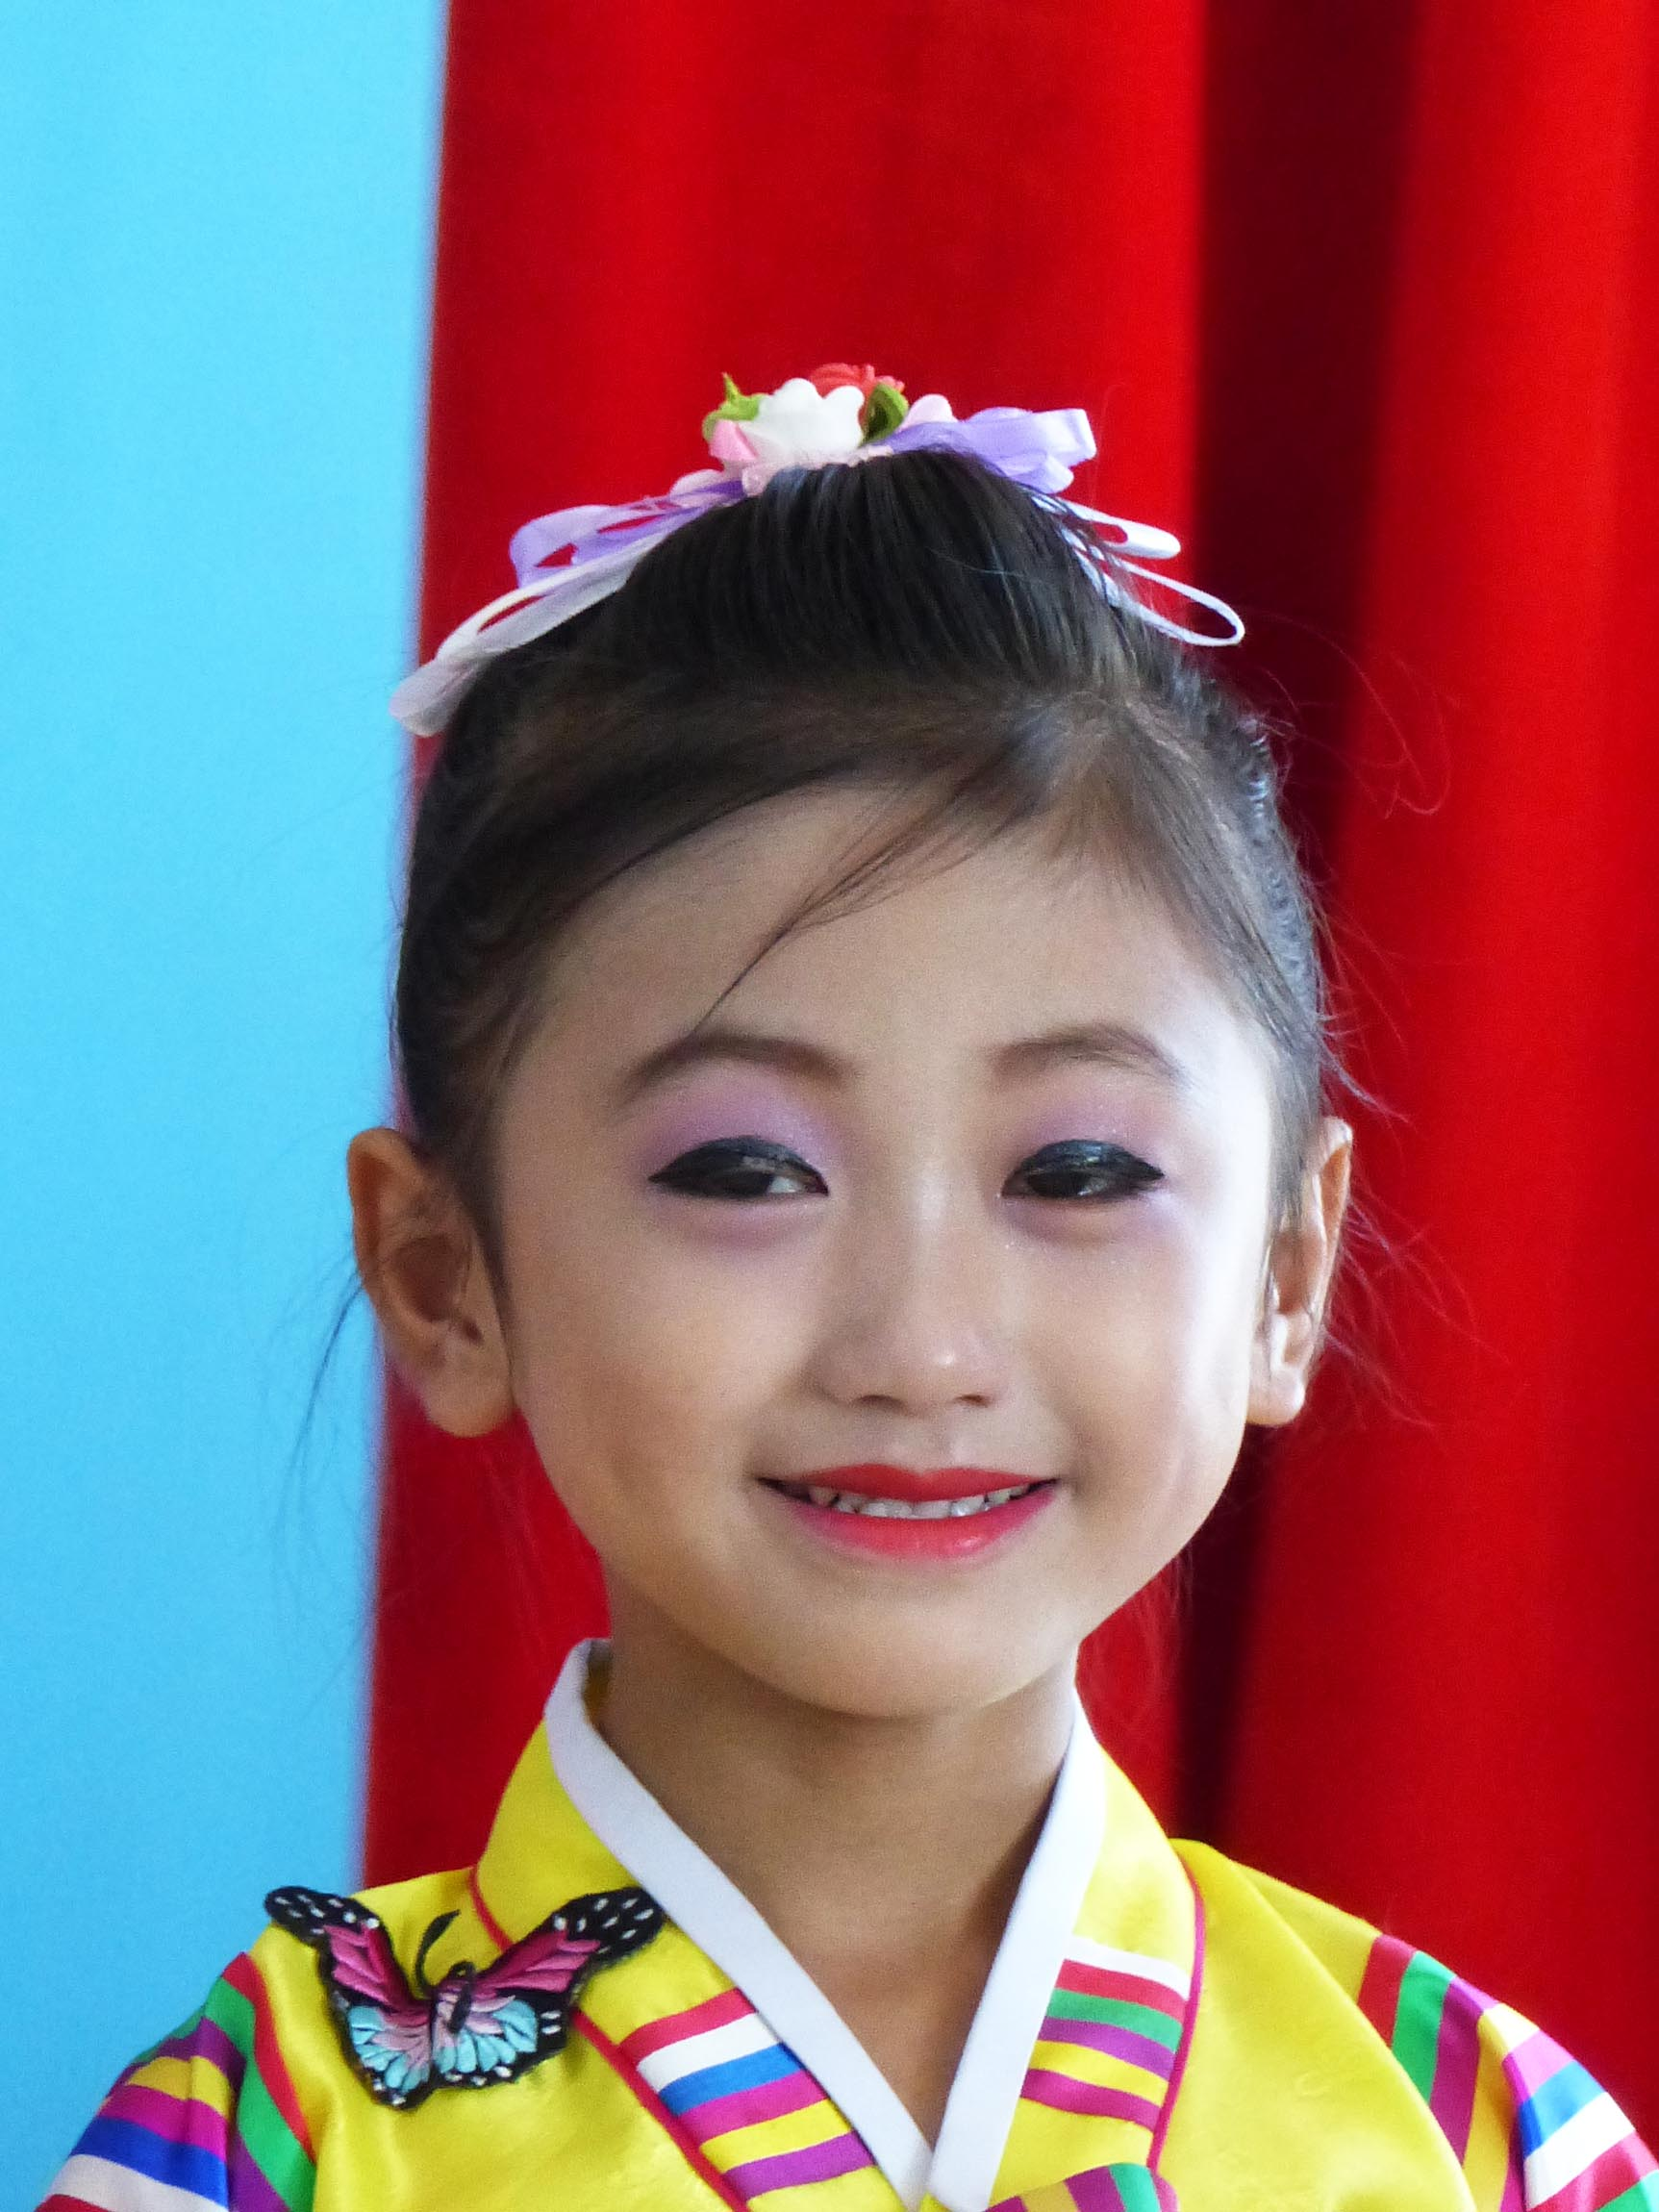 Young girl in traditional dress with make-up